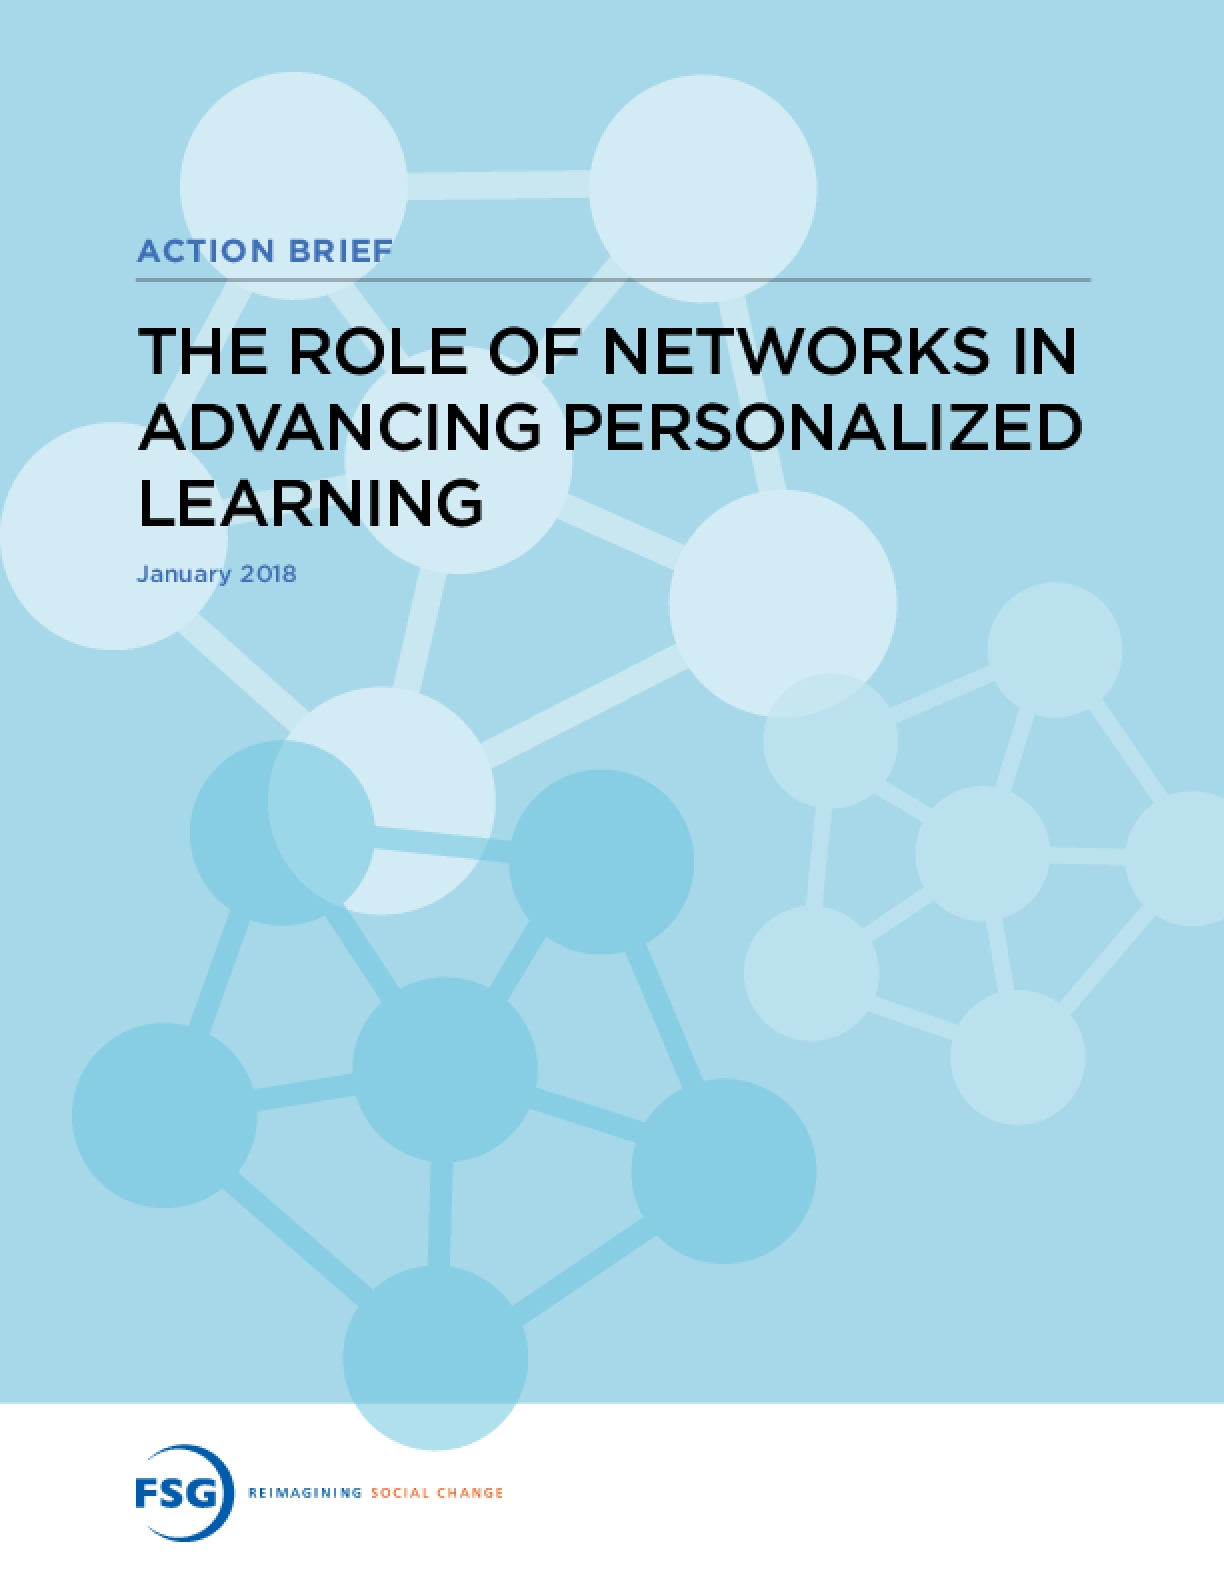 The Role of Networks in Advancing Personalized Learning